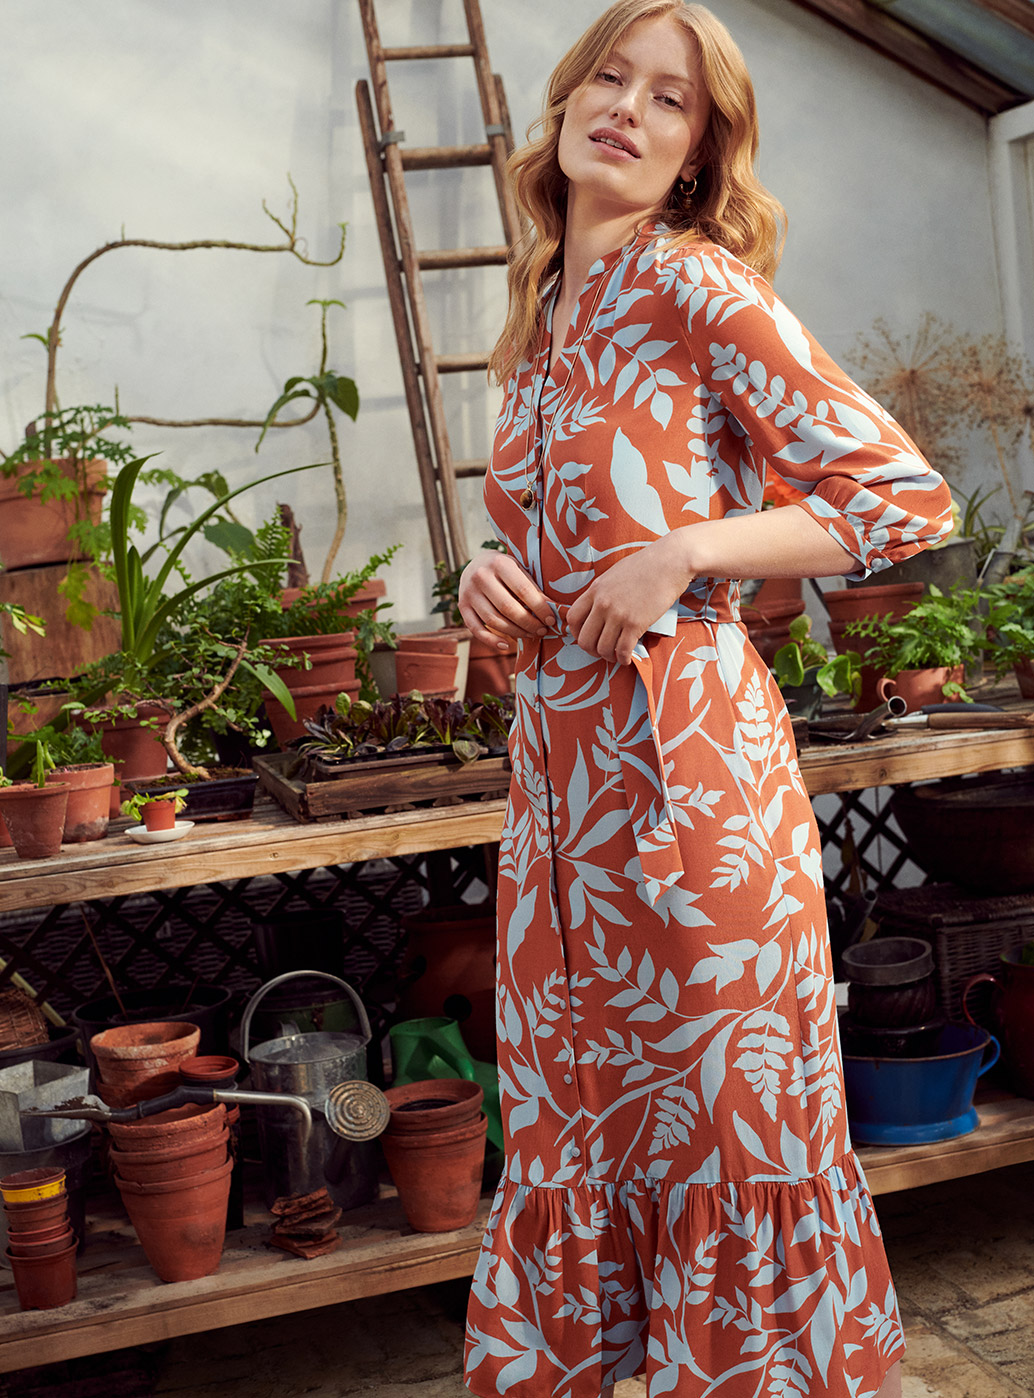 Model wearing a printed shirt dress stands beside potted plants.